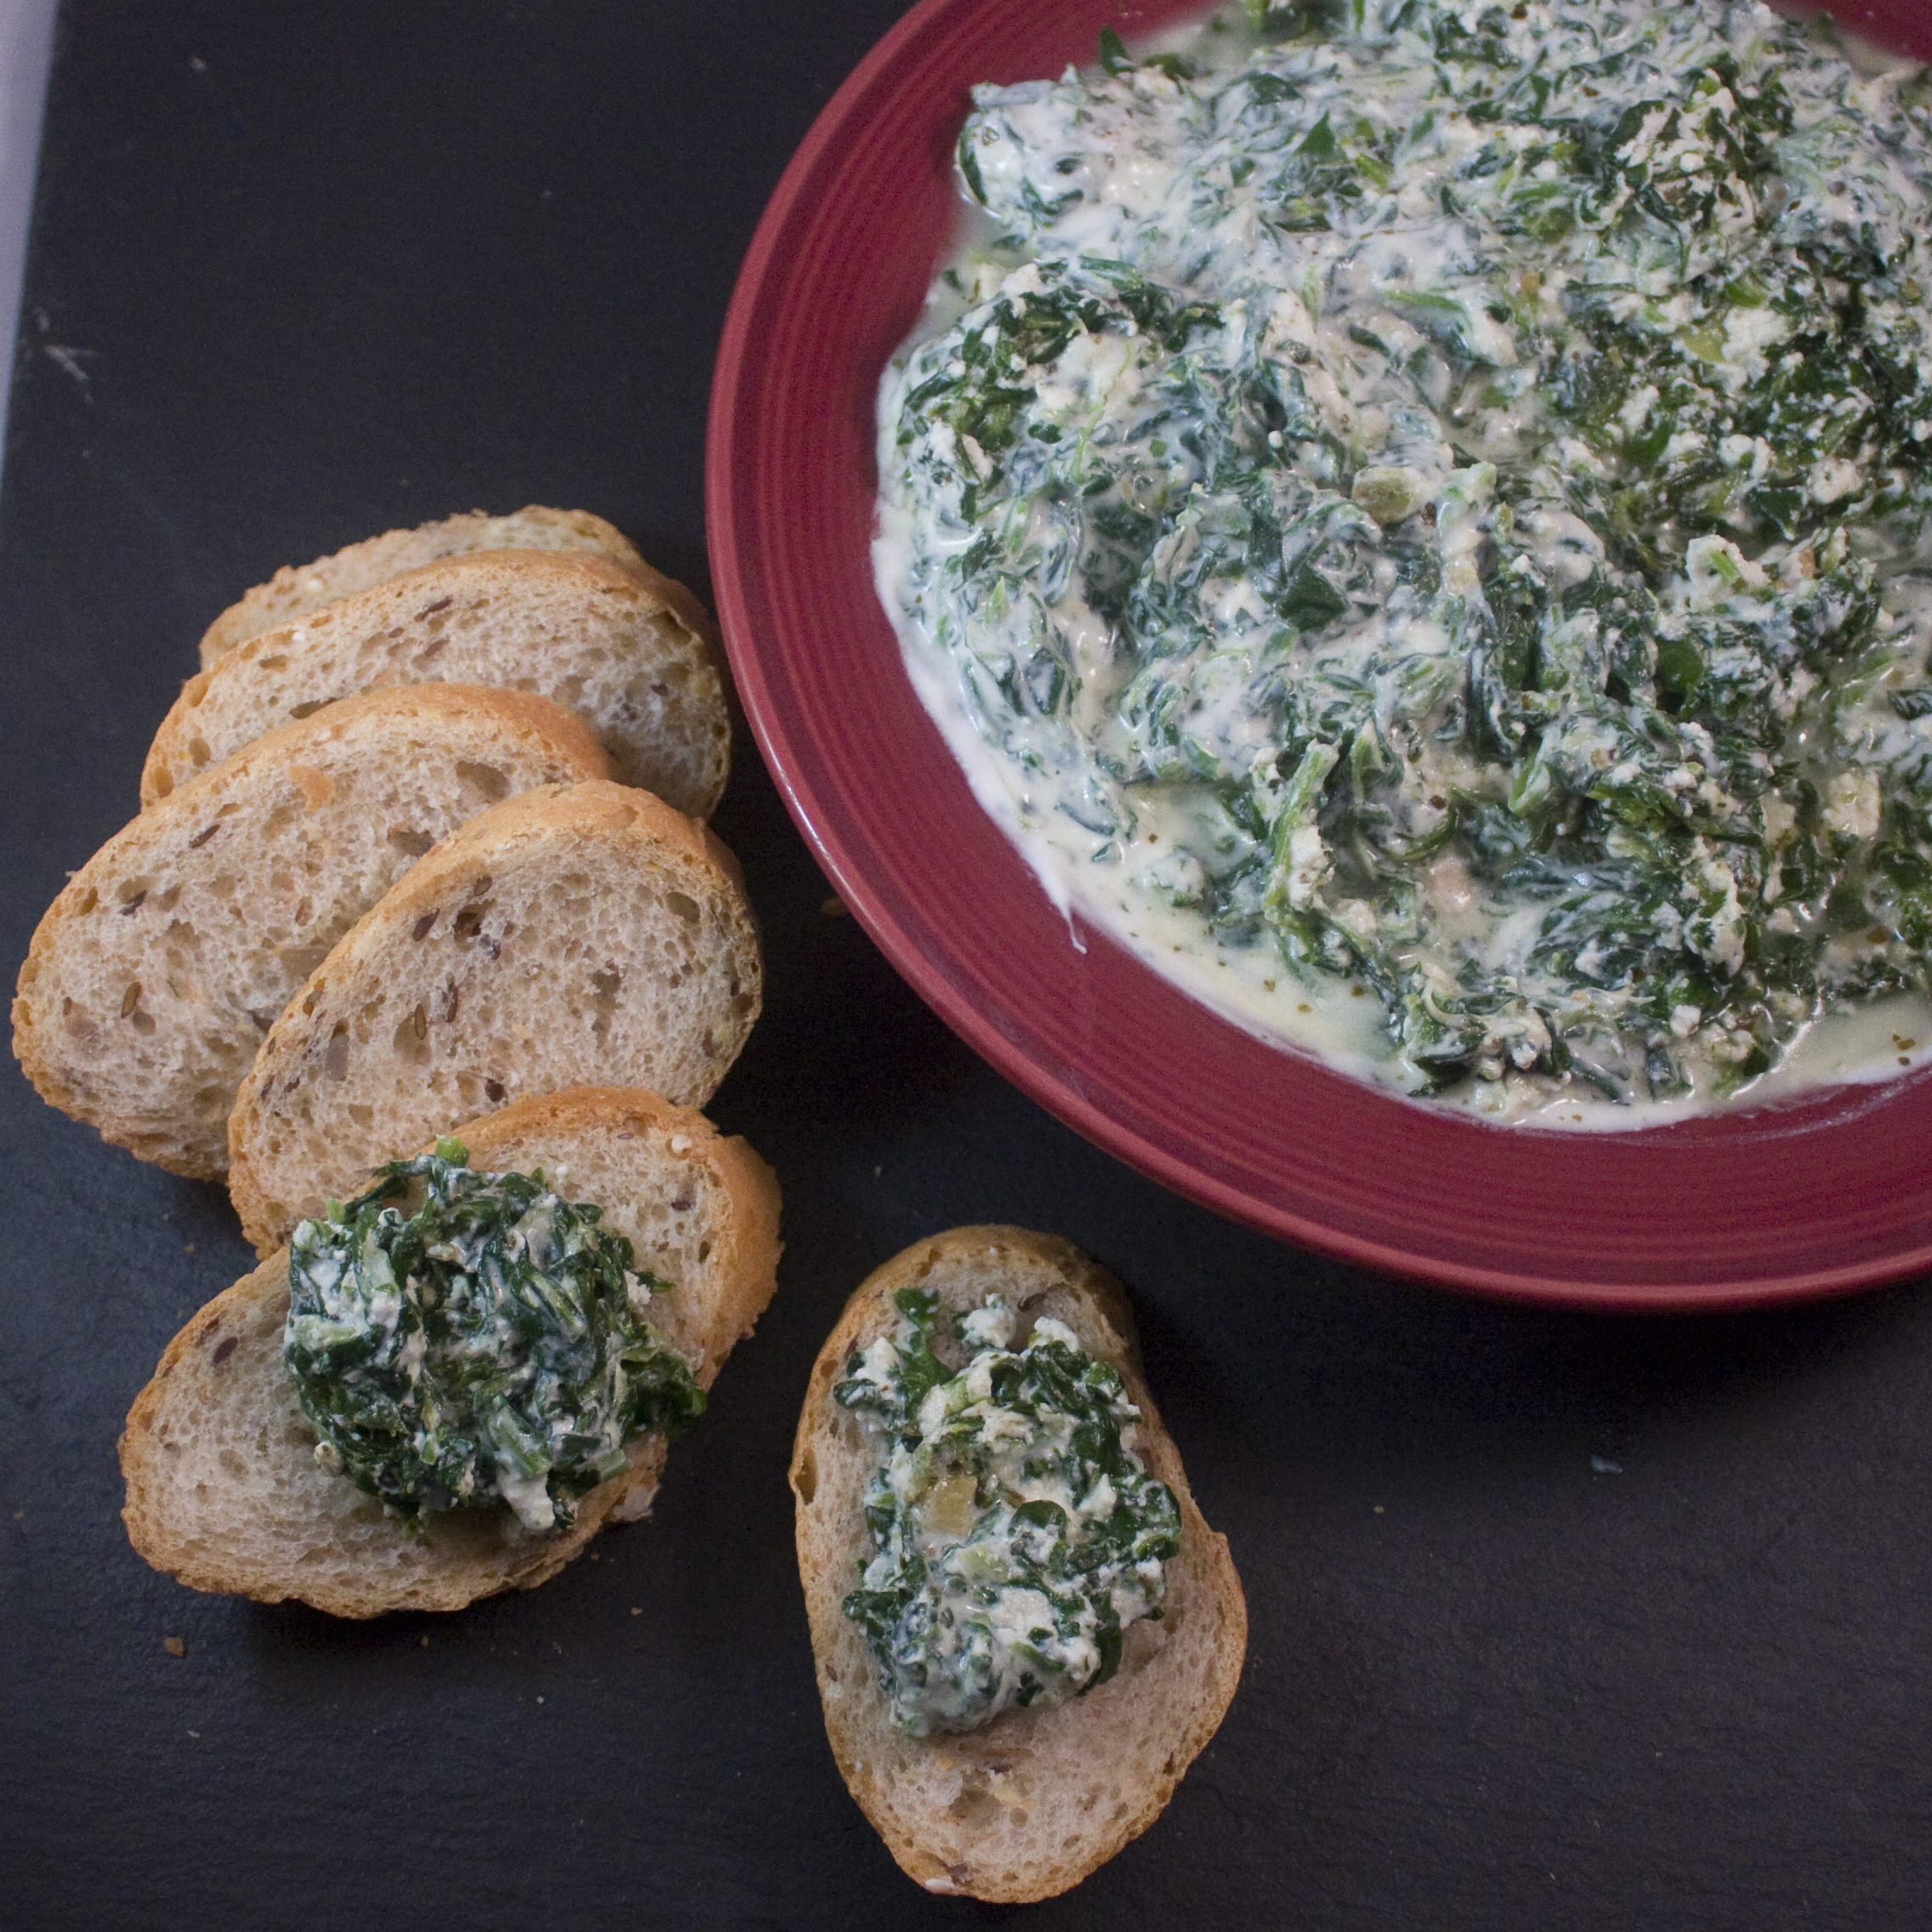 A healthier version of creamy spinach dip will help you manage your weight during the holidays. (Photo courtesy Google Images)